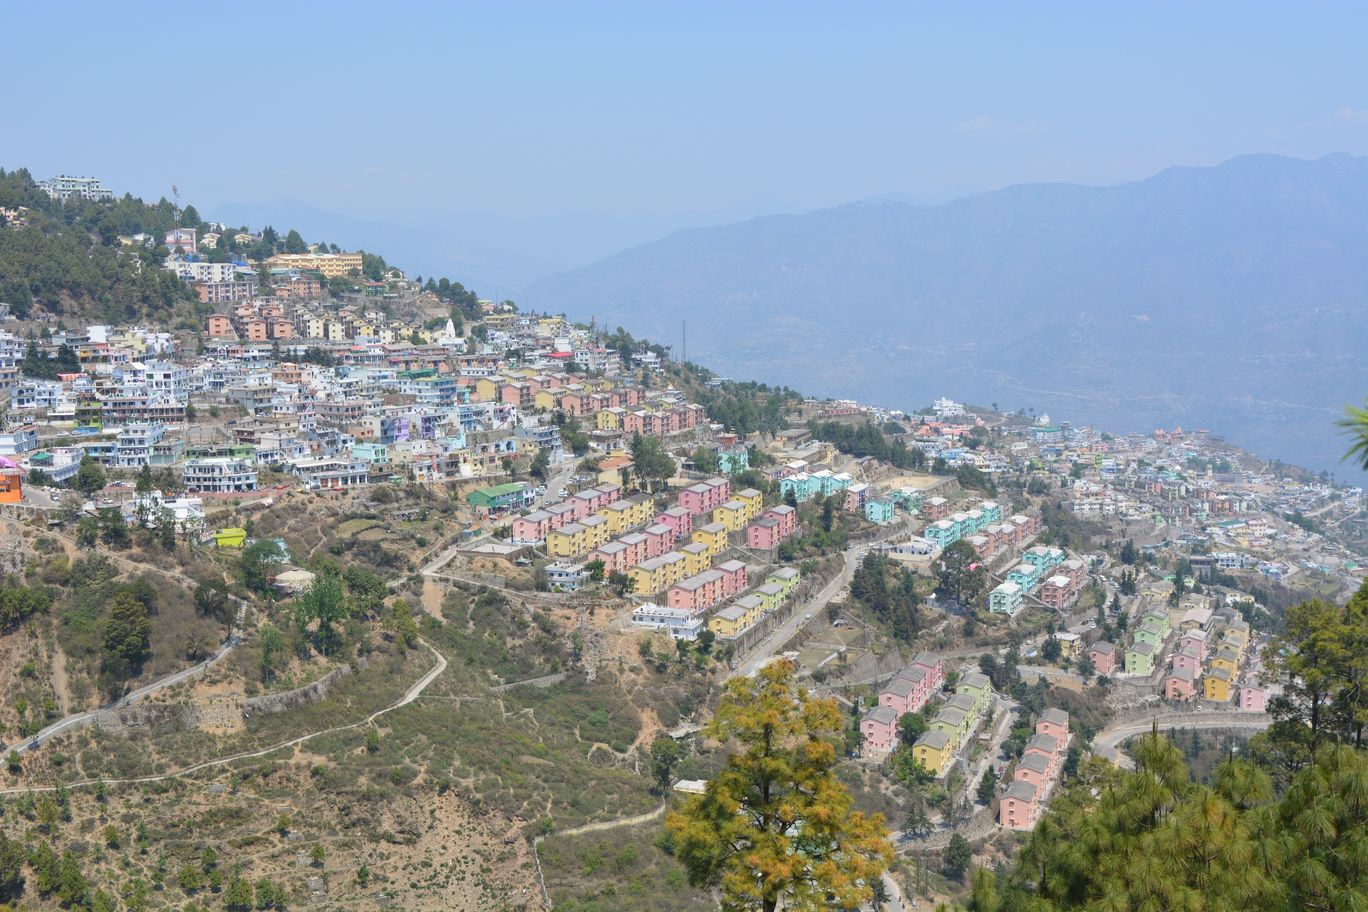 Photo of New Tehri By Amit Kumar Verma